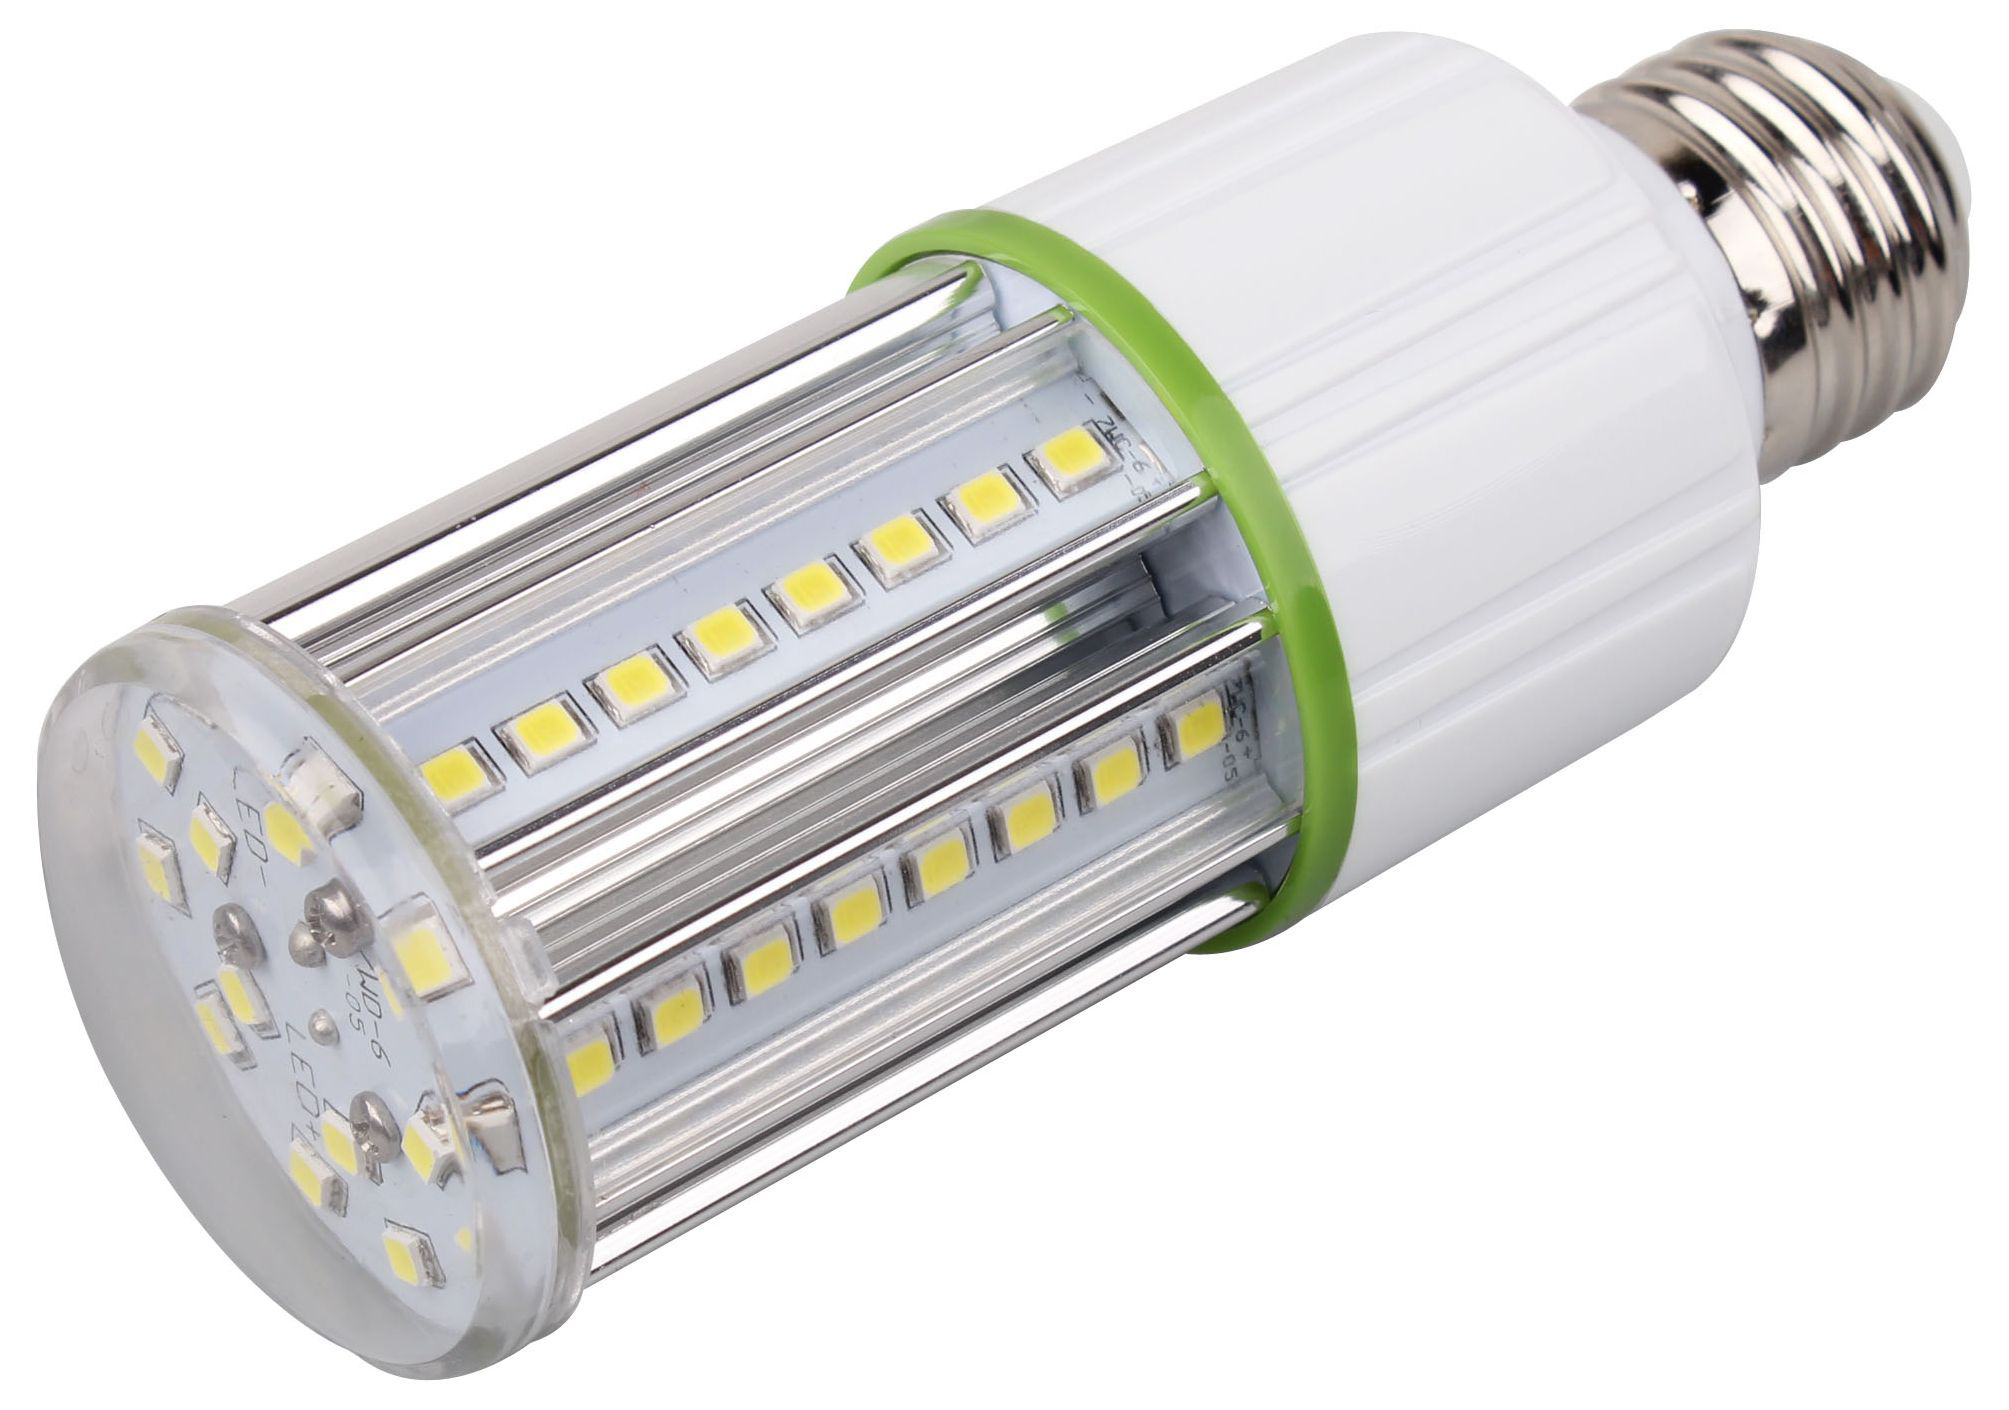 7W 770lm 5000K Corn Light E26 Medium Base UL